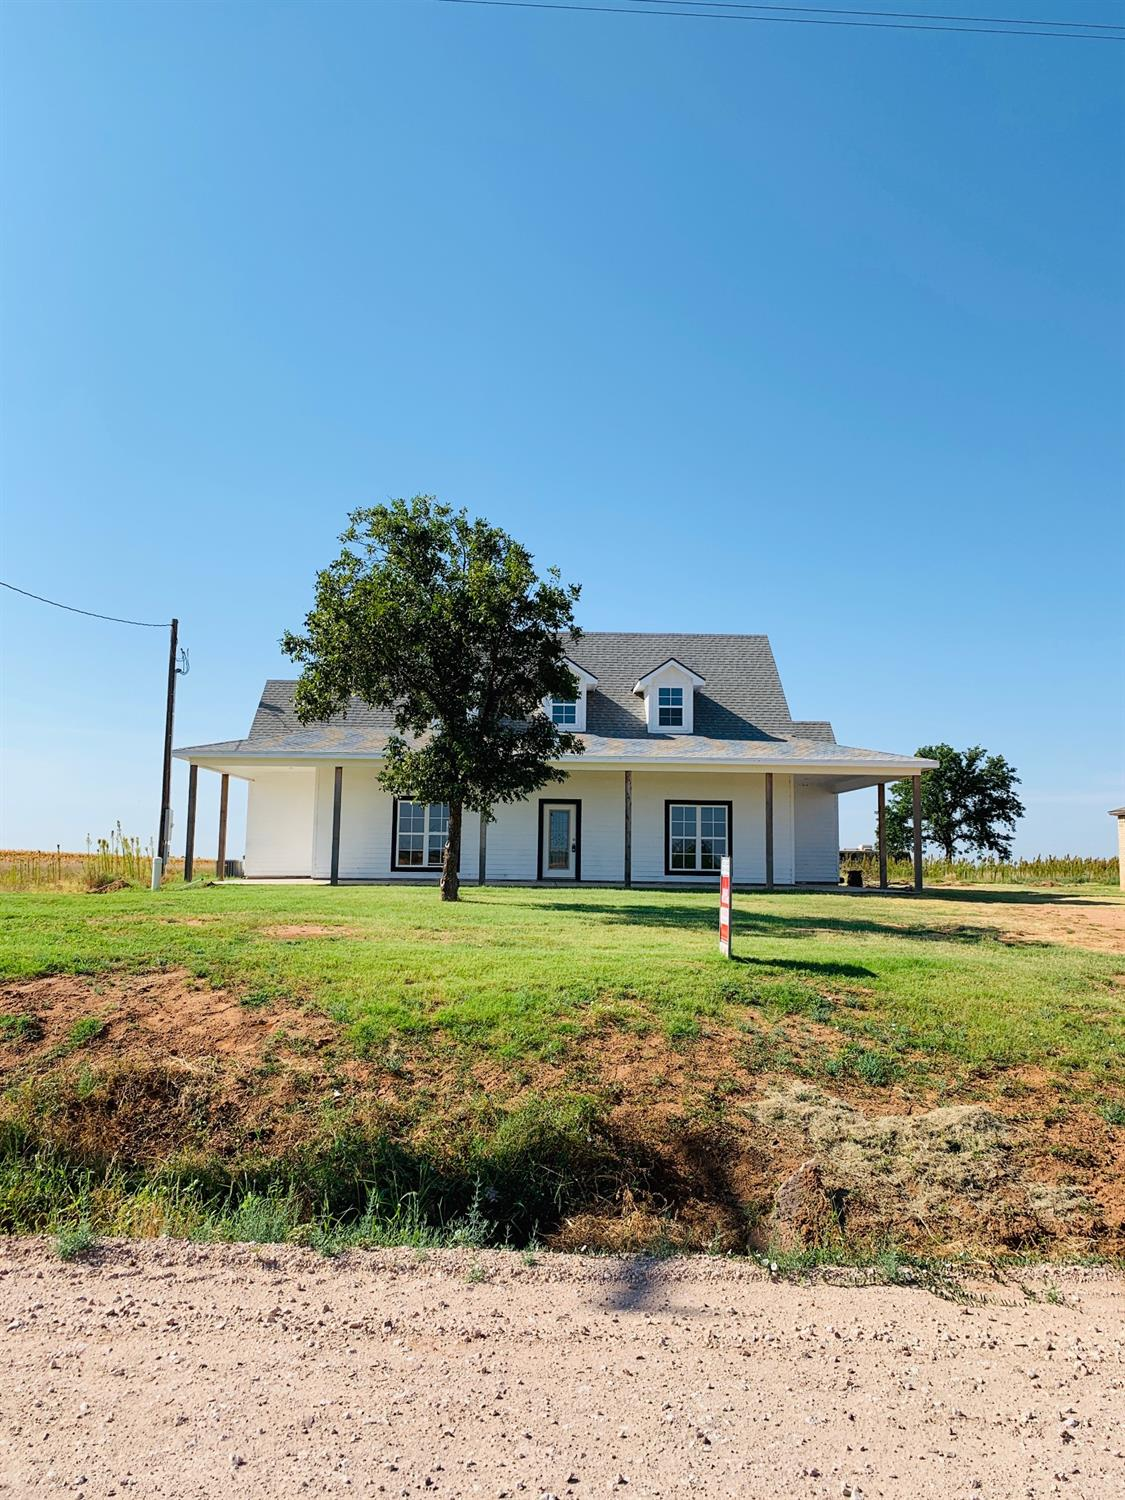 Country Living!  Brand New Farm House Located at New Home! New Home ISD and just a few minutes from school.  Home sits on 3/4 of a acre.  You will fall in love with this home from the second you drive up.  Two Story Farm House with wrap around Porch on Front, sides  and Great Back Porch.  Home is a 4/3 with 450 SF Basement. Basement has two separate rooms located for so many options.  Master Bedroom is located down stairs with a 2nd Master with full bath also down stairs.   Open Floor Plan to enjoy with family and friends. This kitchen is a cooks dream, gas stainless appliances, tons of cabinets to the ceiling and counter space. All rooms have beautiful windows to see great country view everywhere you look.  Two Bedrooms upstairs with full bathroom and a great workspace in hallway.